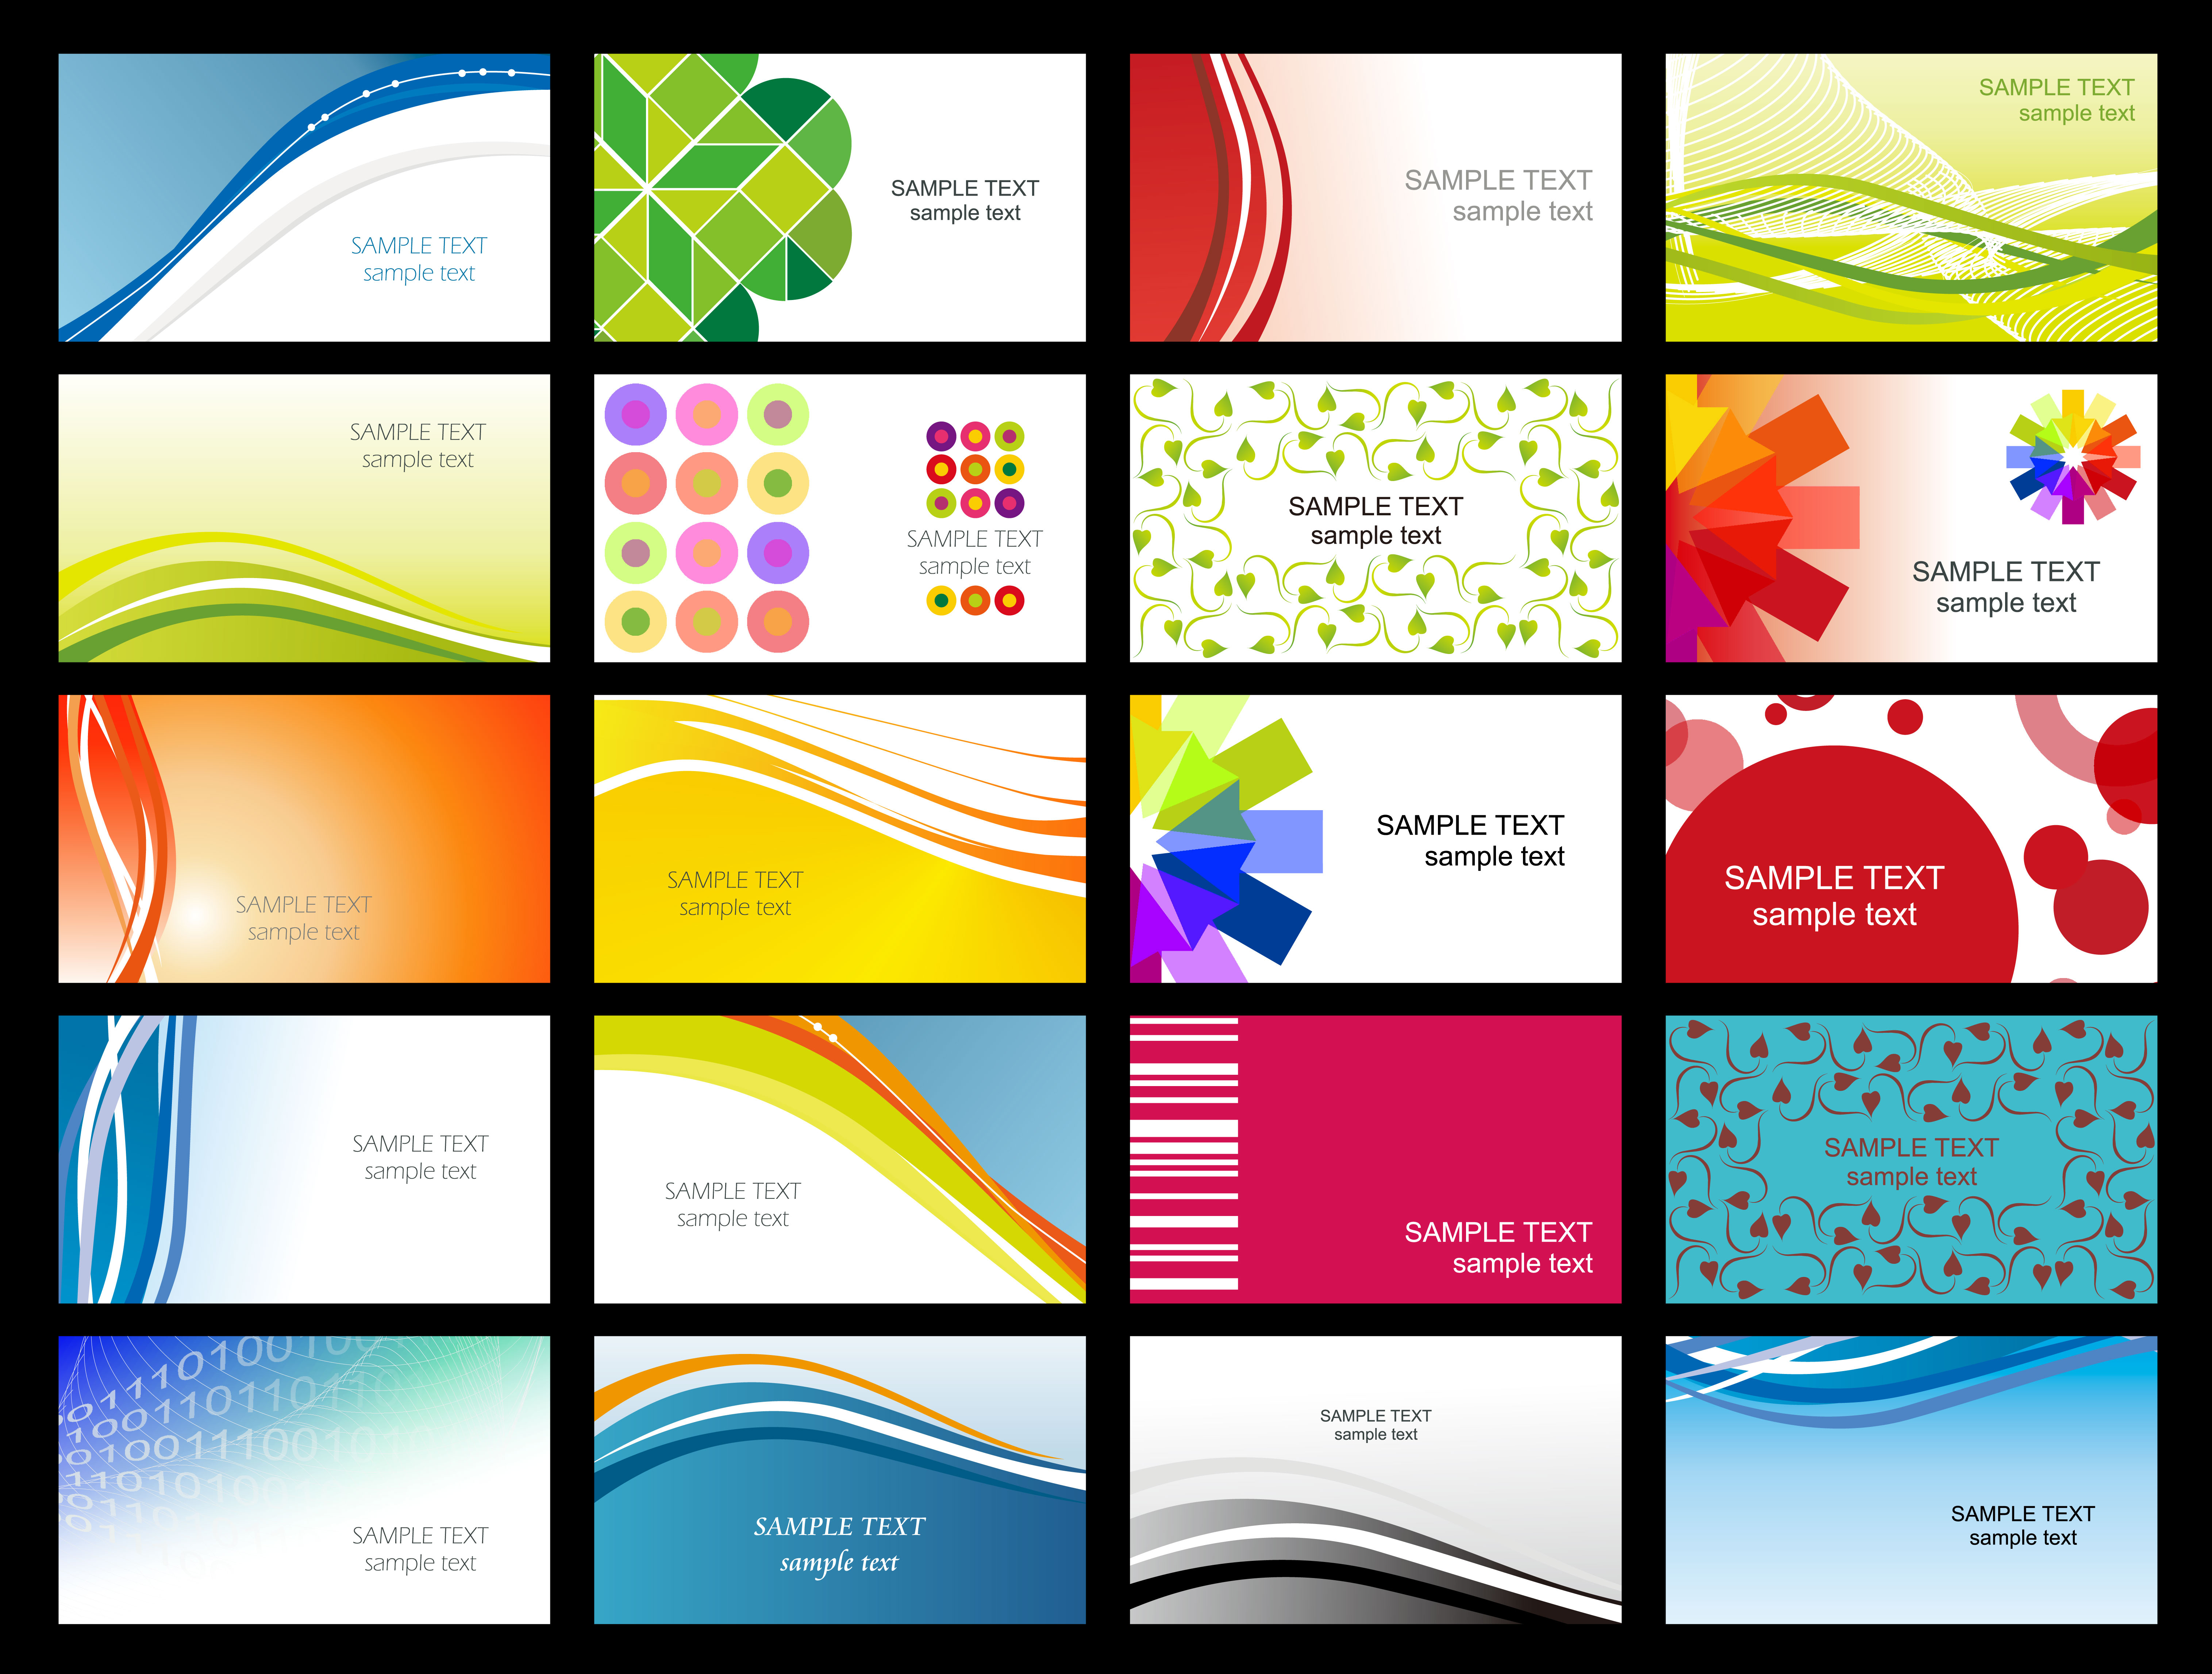 Free Printable Business Card Templates Sample | Get Sniffer - Free Printable Business Card Templates For Word